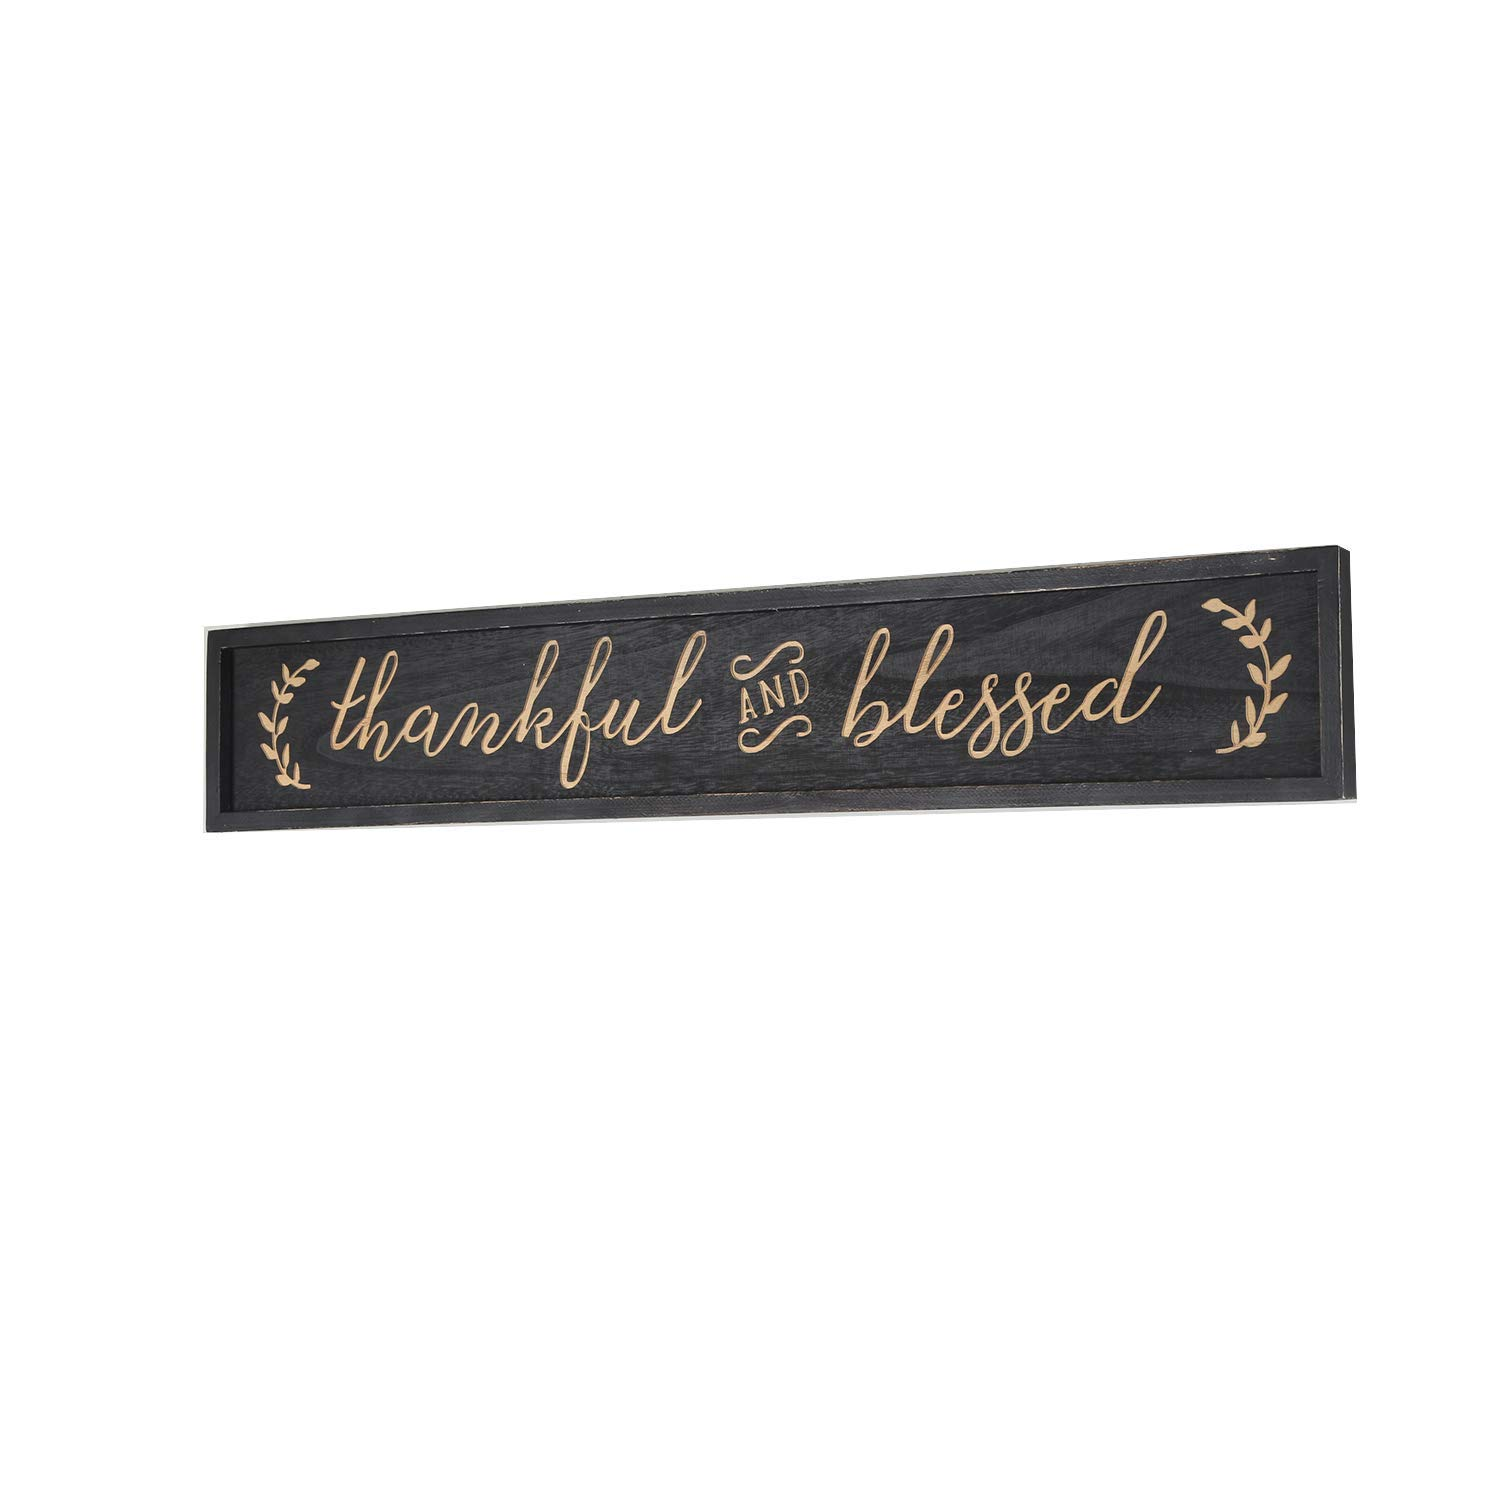 Black NIKKY HOME Thankful and Blessed Carved Wood Framed Wall Plaque Sign with Inspirational Quote 36 x 9